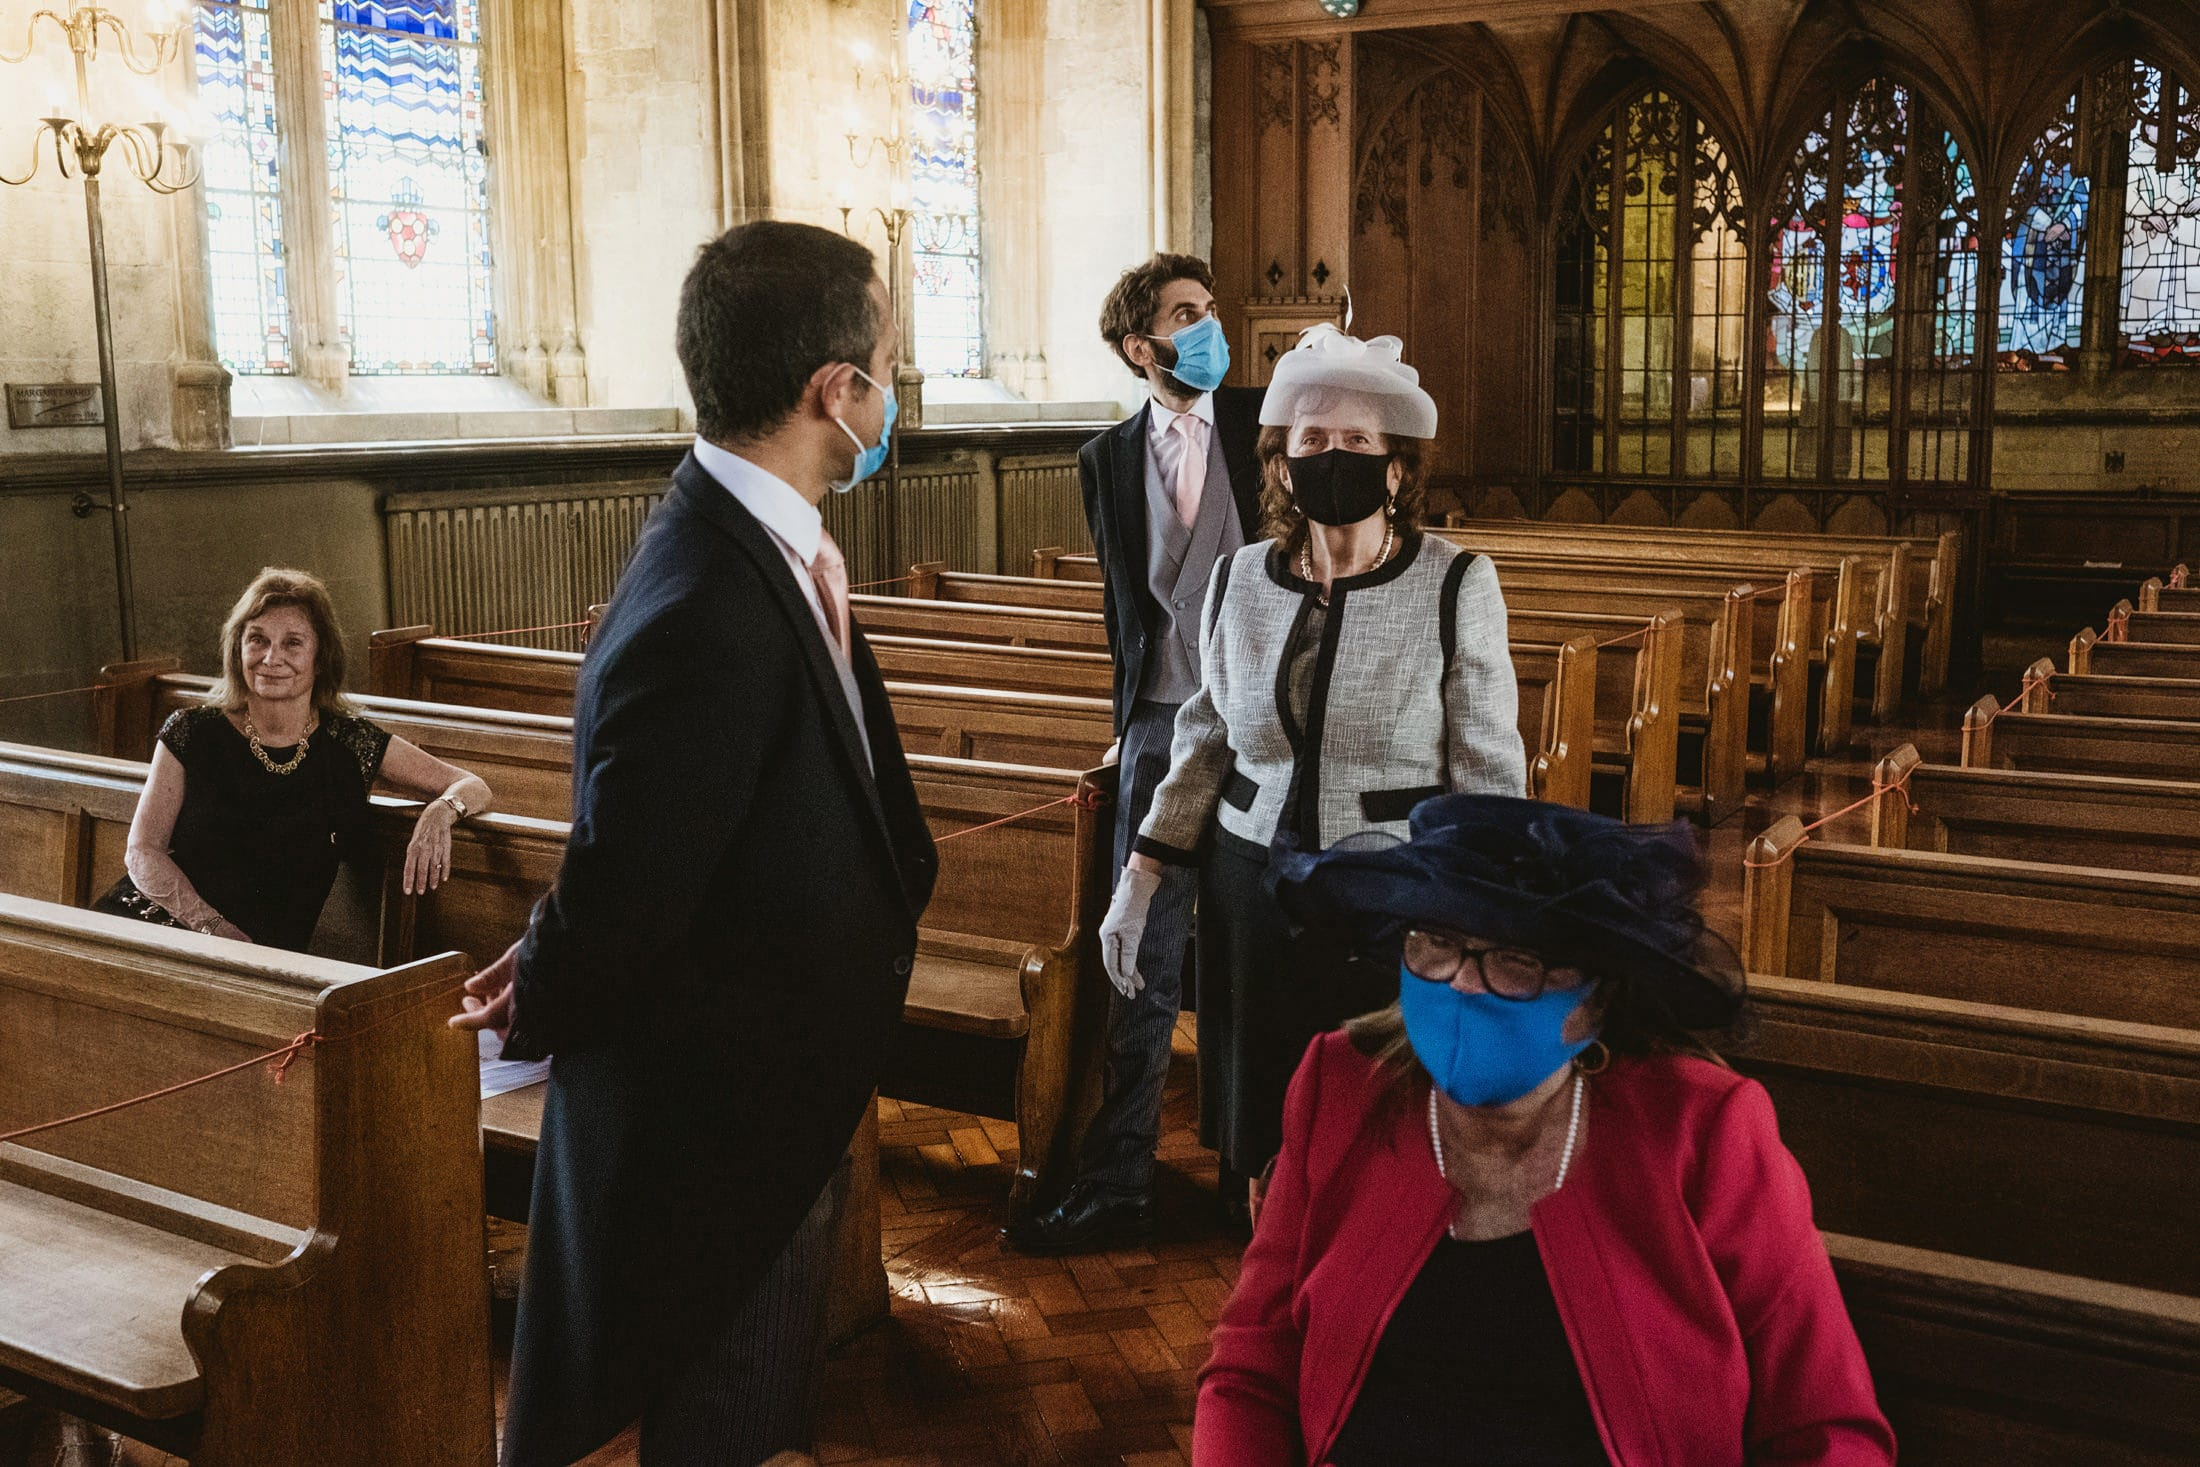 Guests assemble in a London church ready for an intimate London micro wedding. Four of the five people in the photograph wear face-masks due to being a covid-19 wedding. Micro wedding photography by York Place Studios